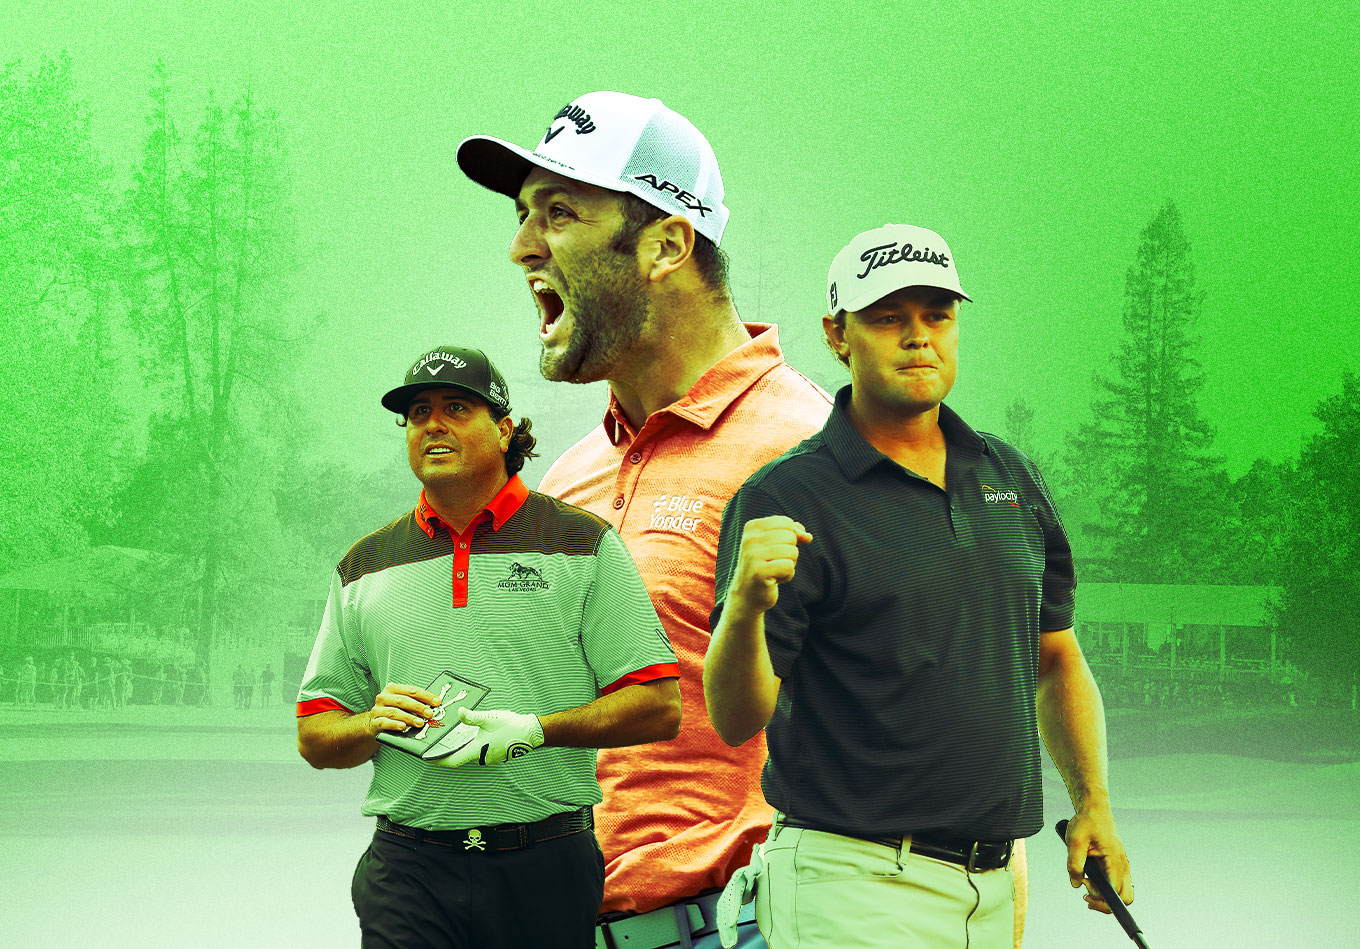 Jon Rahm Is the Overwhelming Favorite at the Fortinet Championship